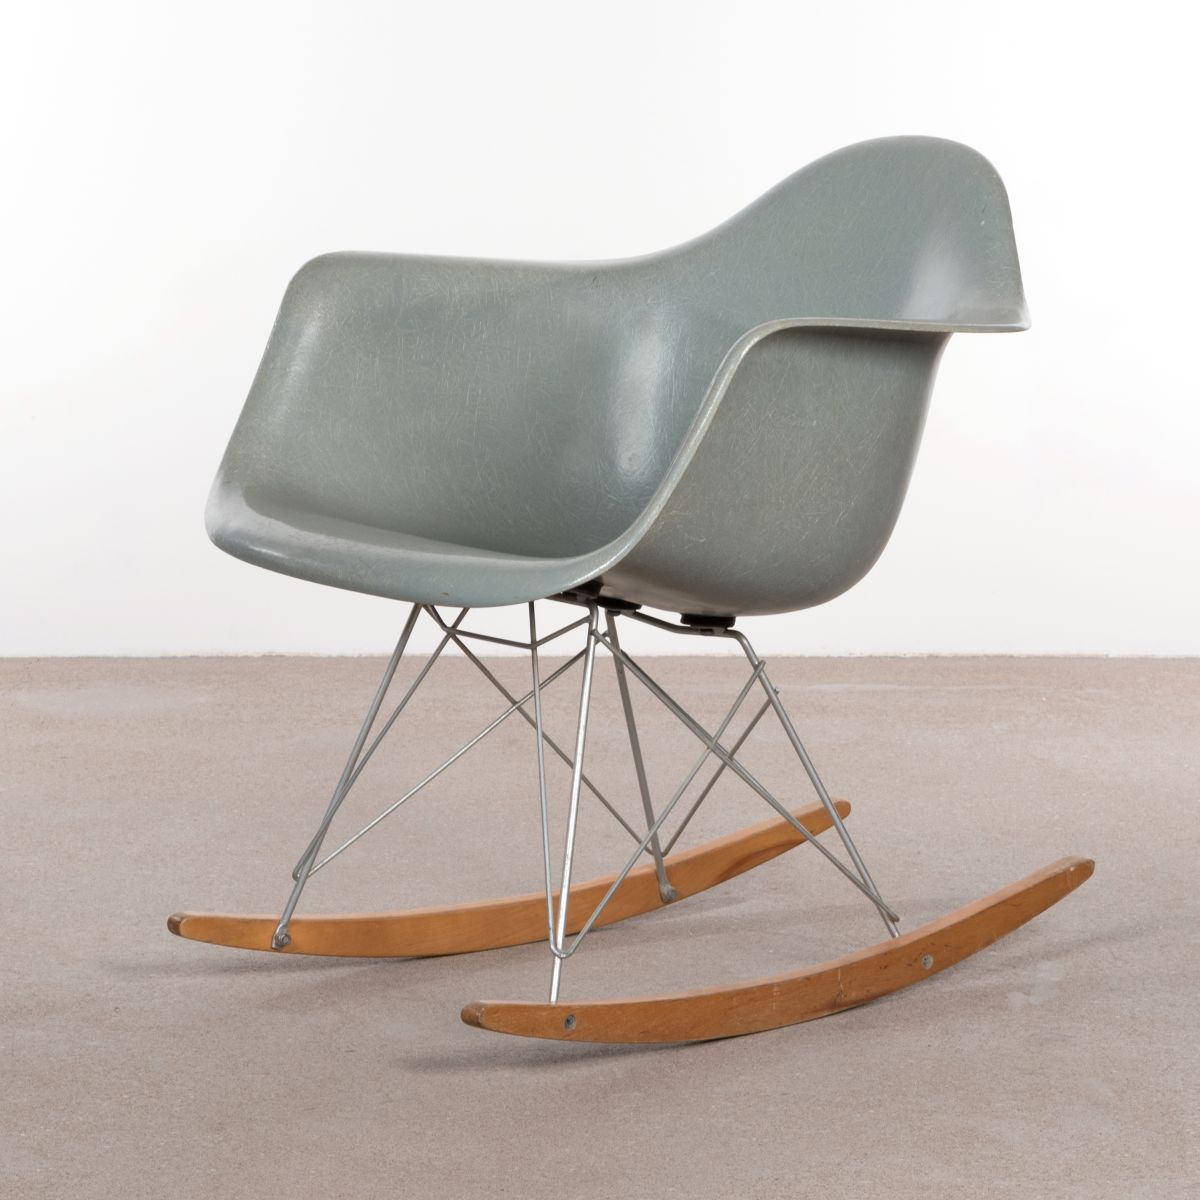 Rar rocking chair by charles ray eames for herman miller 1960s for sal - Rocking chair charles eames ...